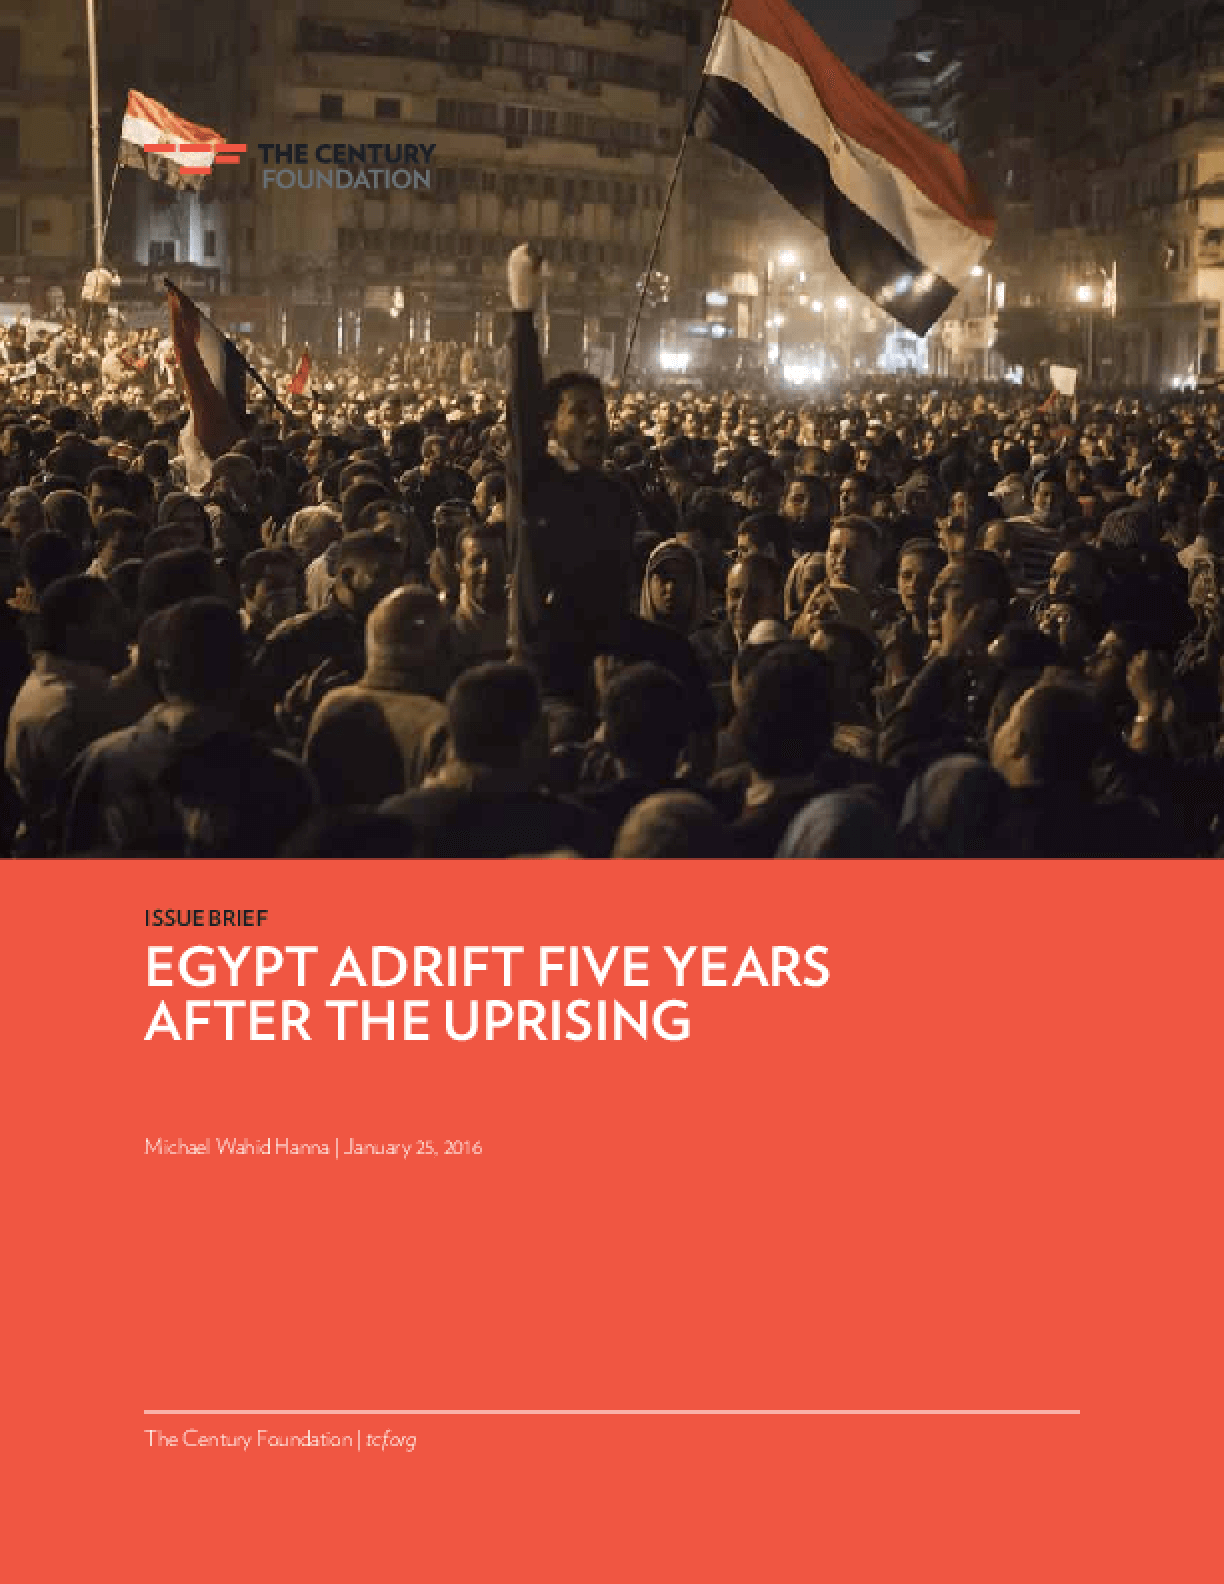 Egypt Adrift Five Years After The Uprising